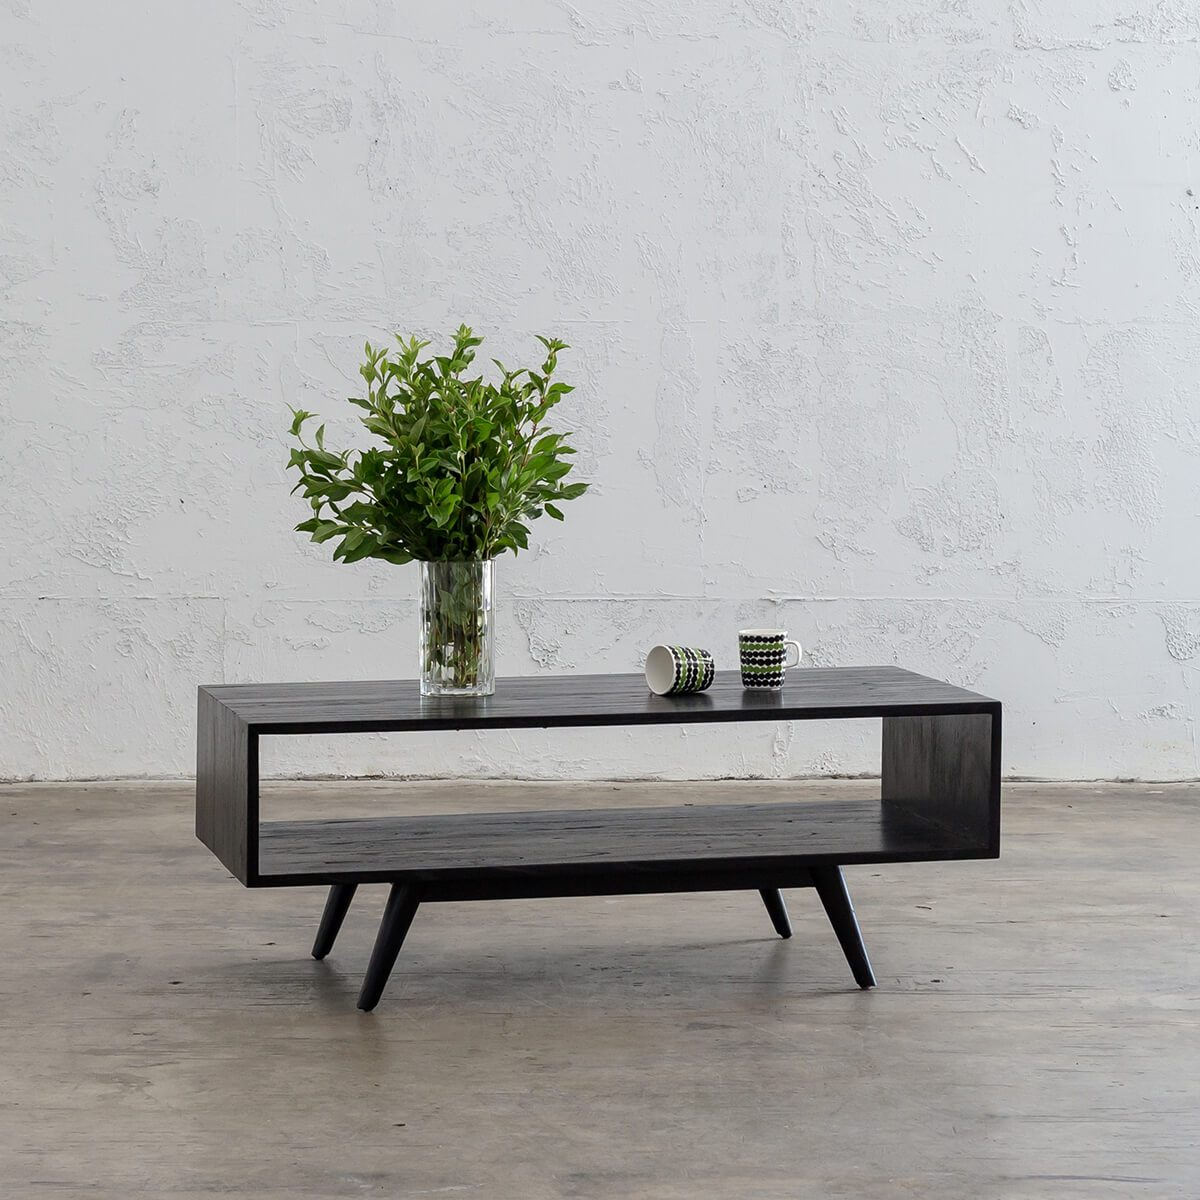 AMARA MID CENTURY TIMBER COFFEE TABLE  |  SQUARE WOOD COFFEE TABLE WITH SHELF |  BLACK